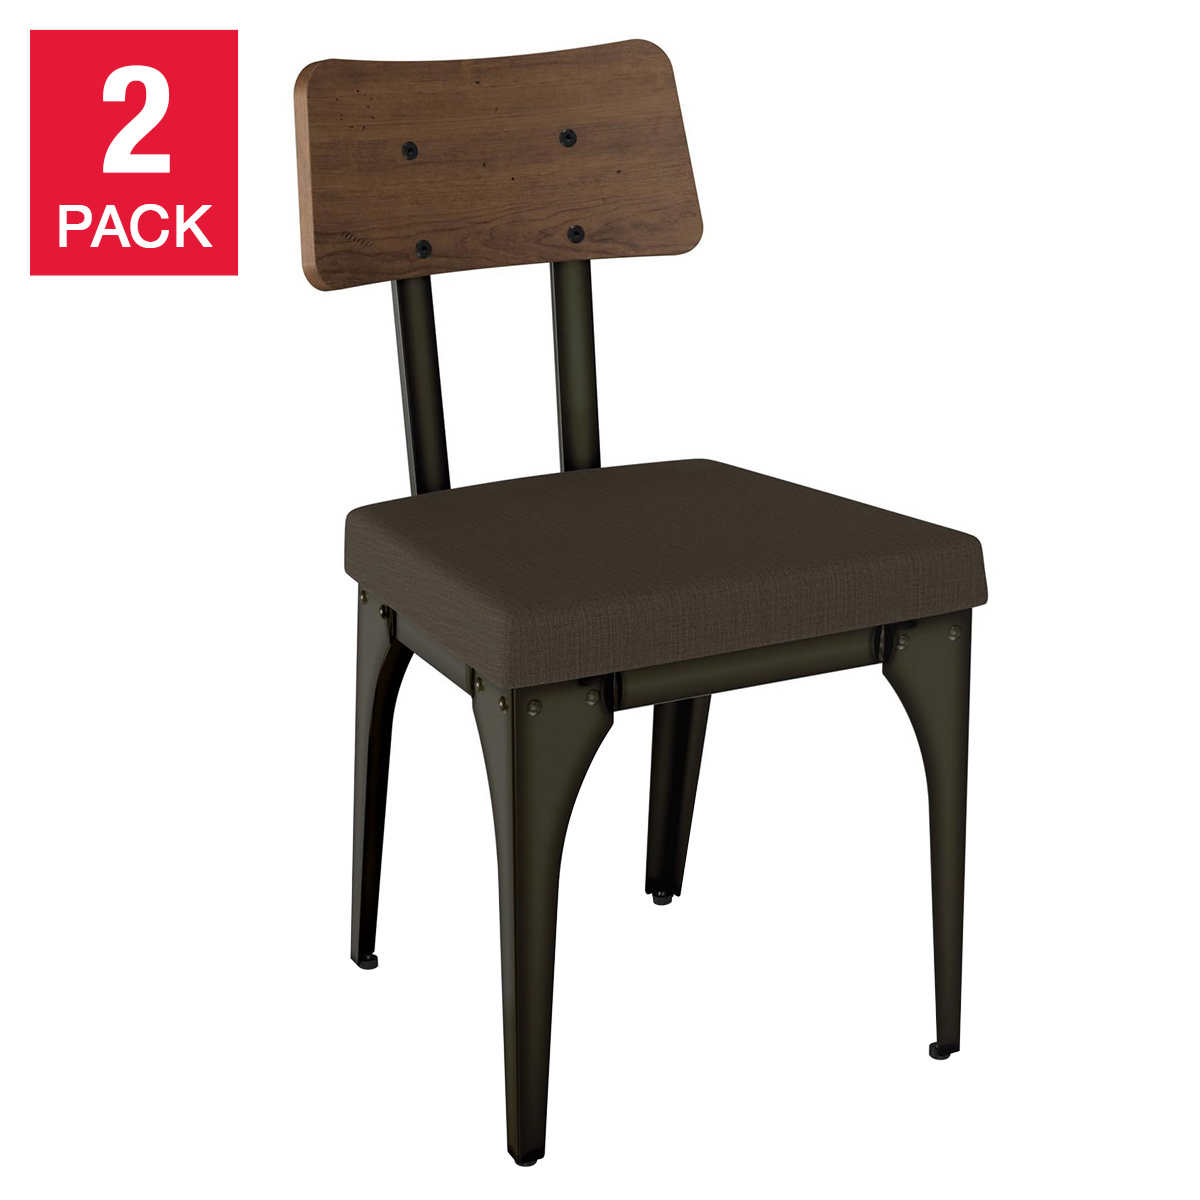 Amisco Symmetry Dining Chair 2 Pack